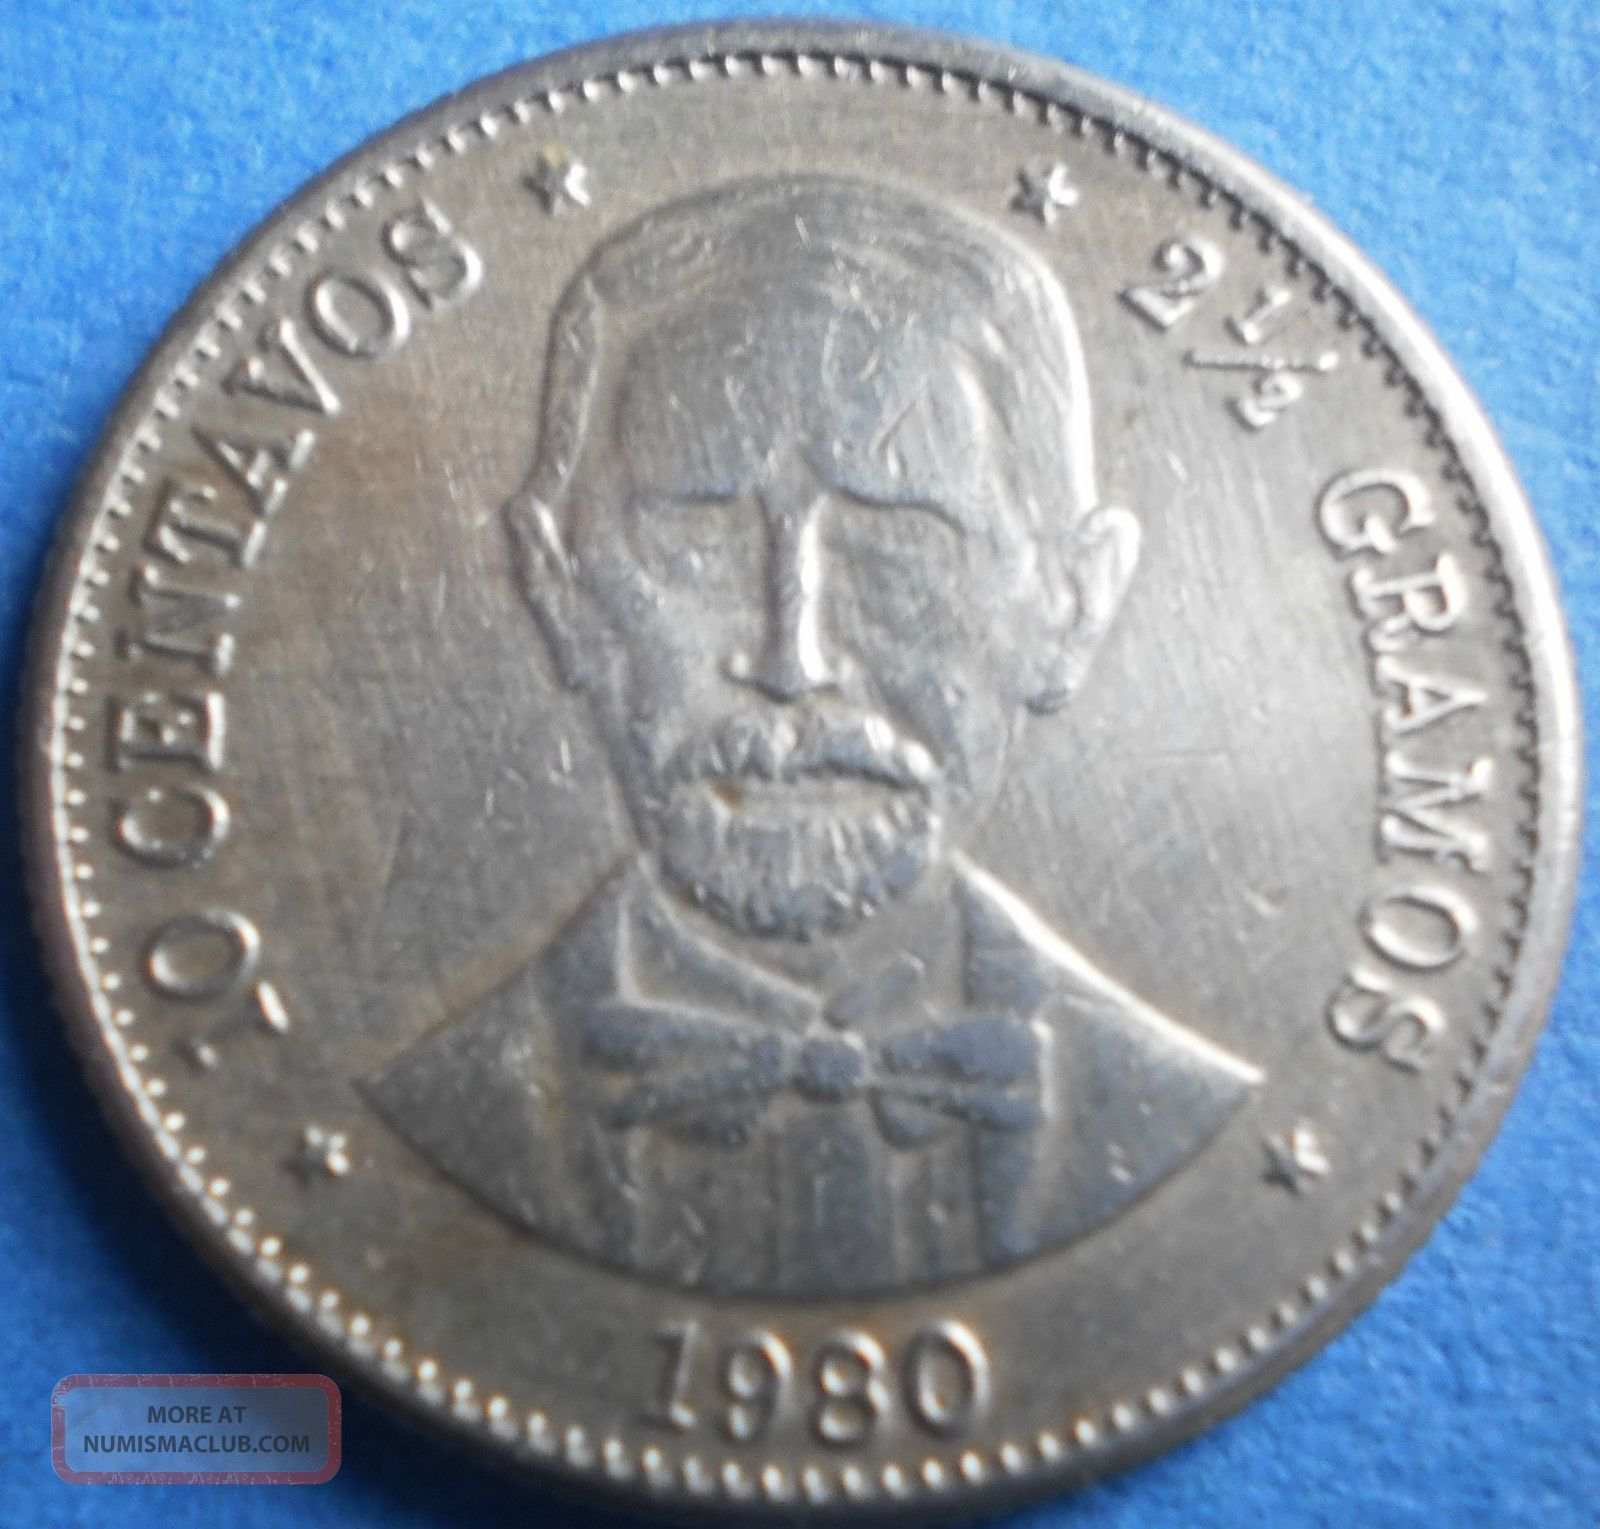 Dominican Republic 10 Centavos 1980 Dominicana